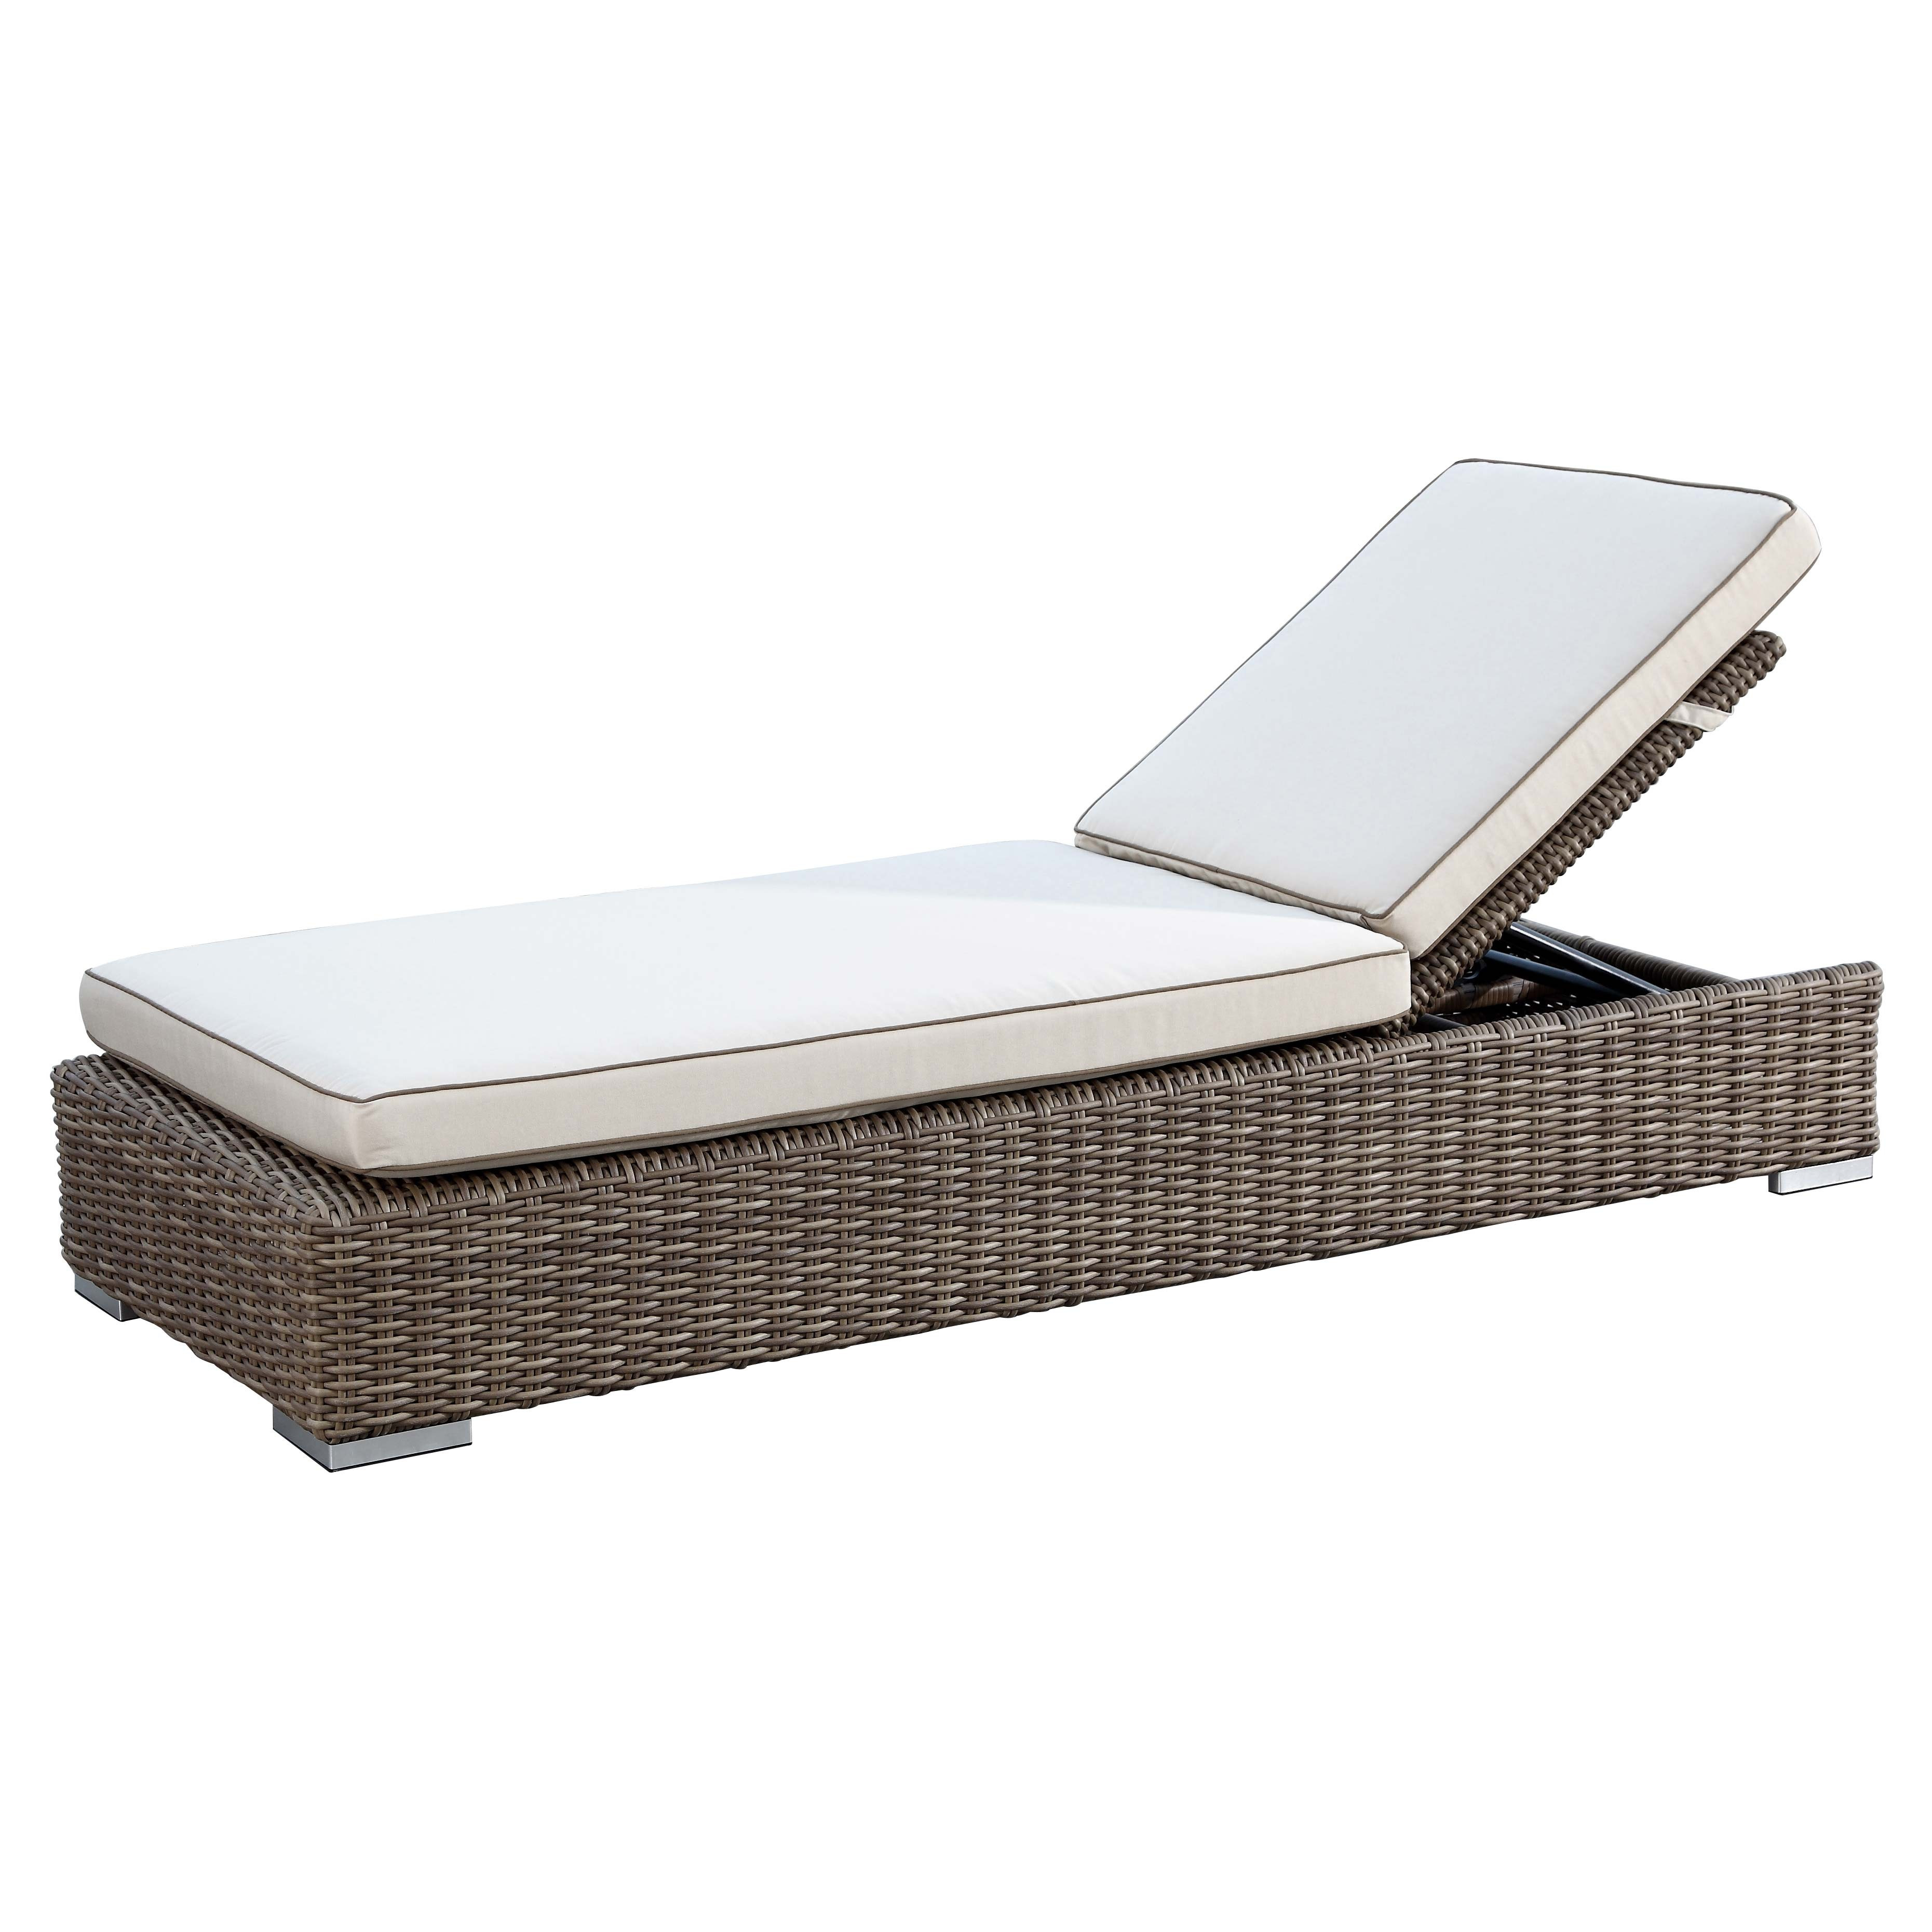 of garden wood today set product chaise ariana overstock with acacia home outdoor cushion shipping mattress free lounge